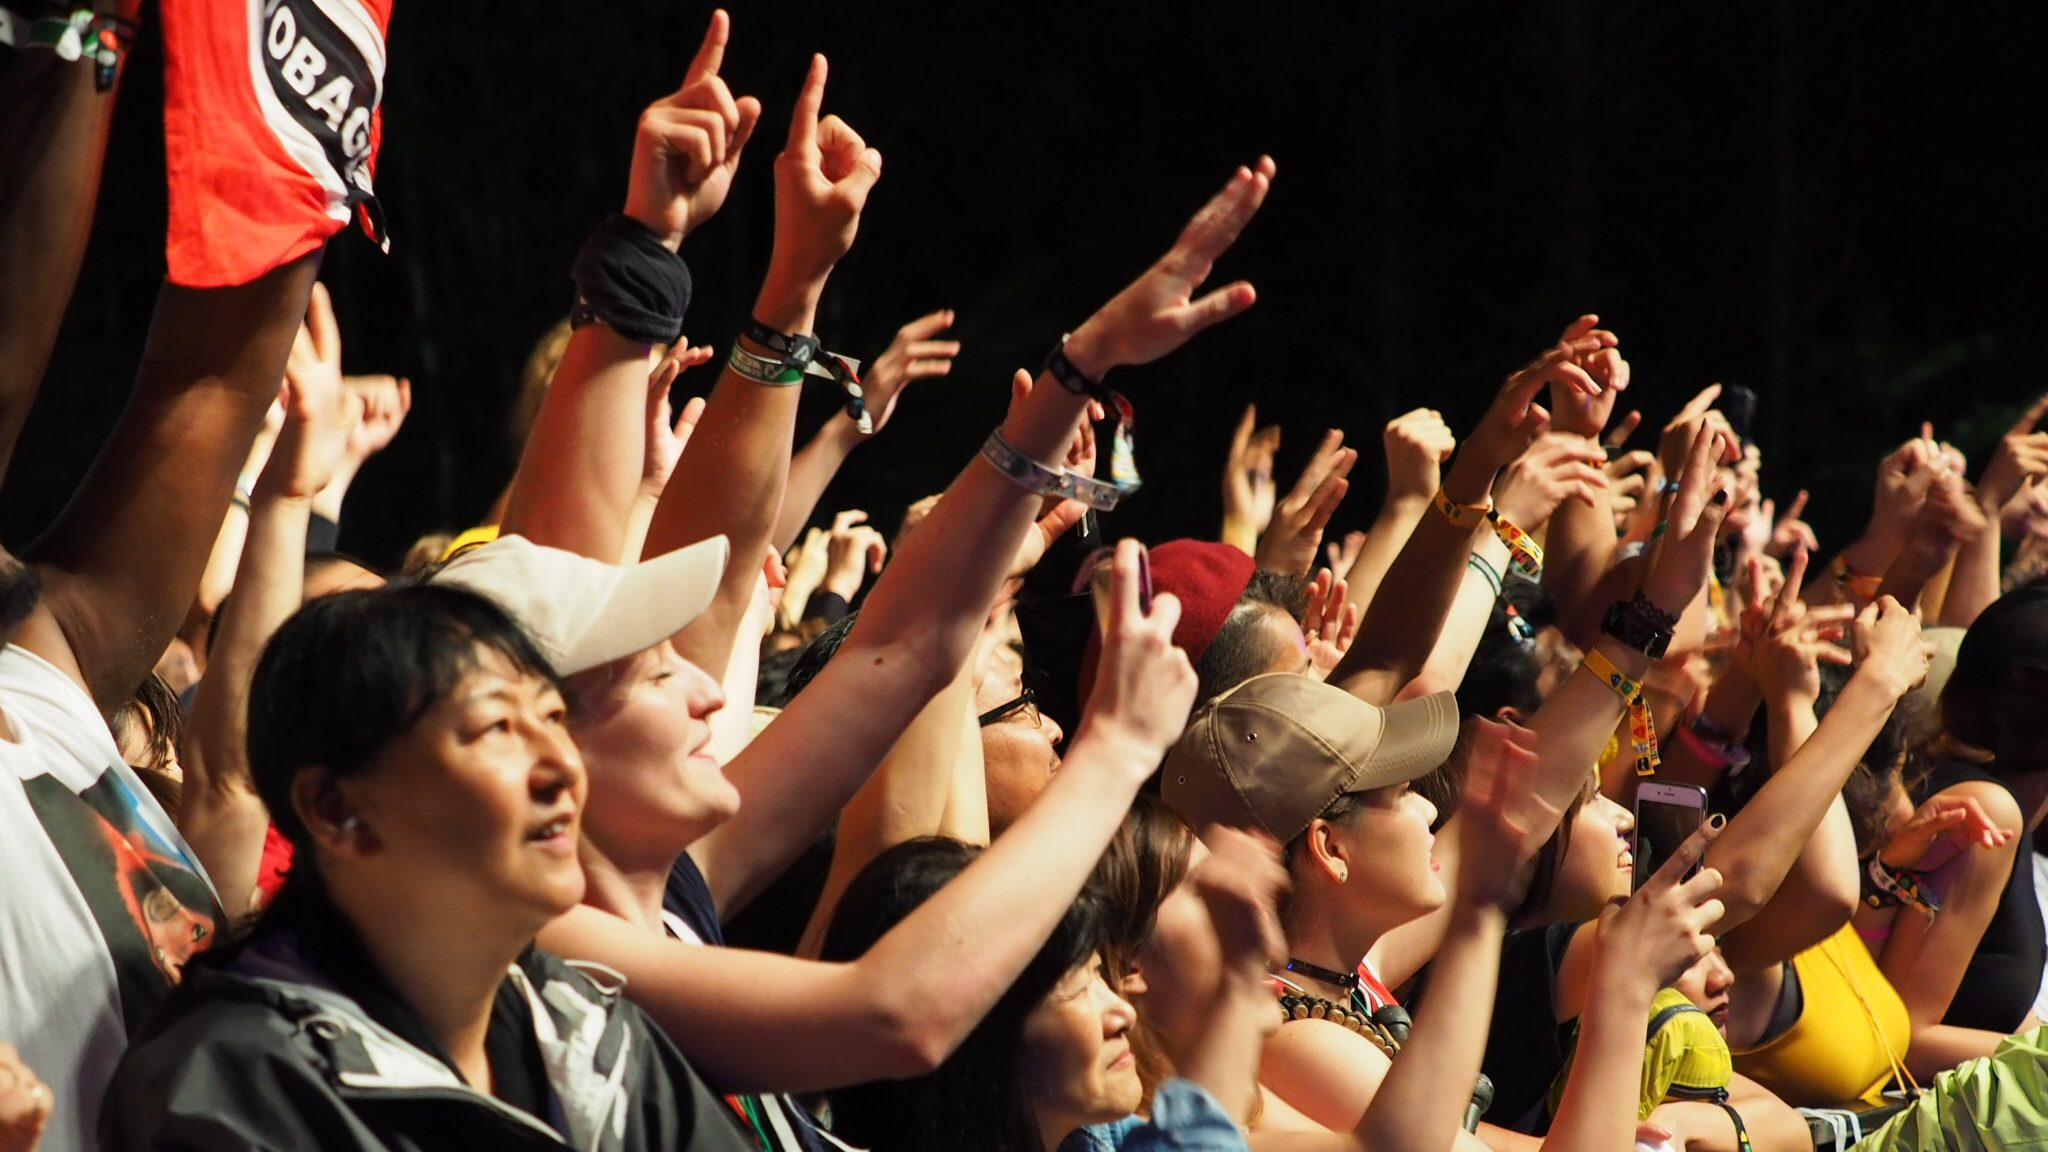 fuji rock crowds